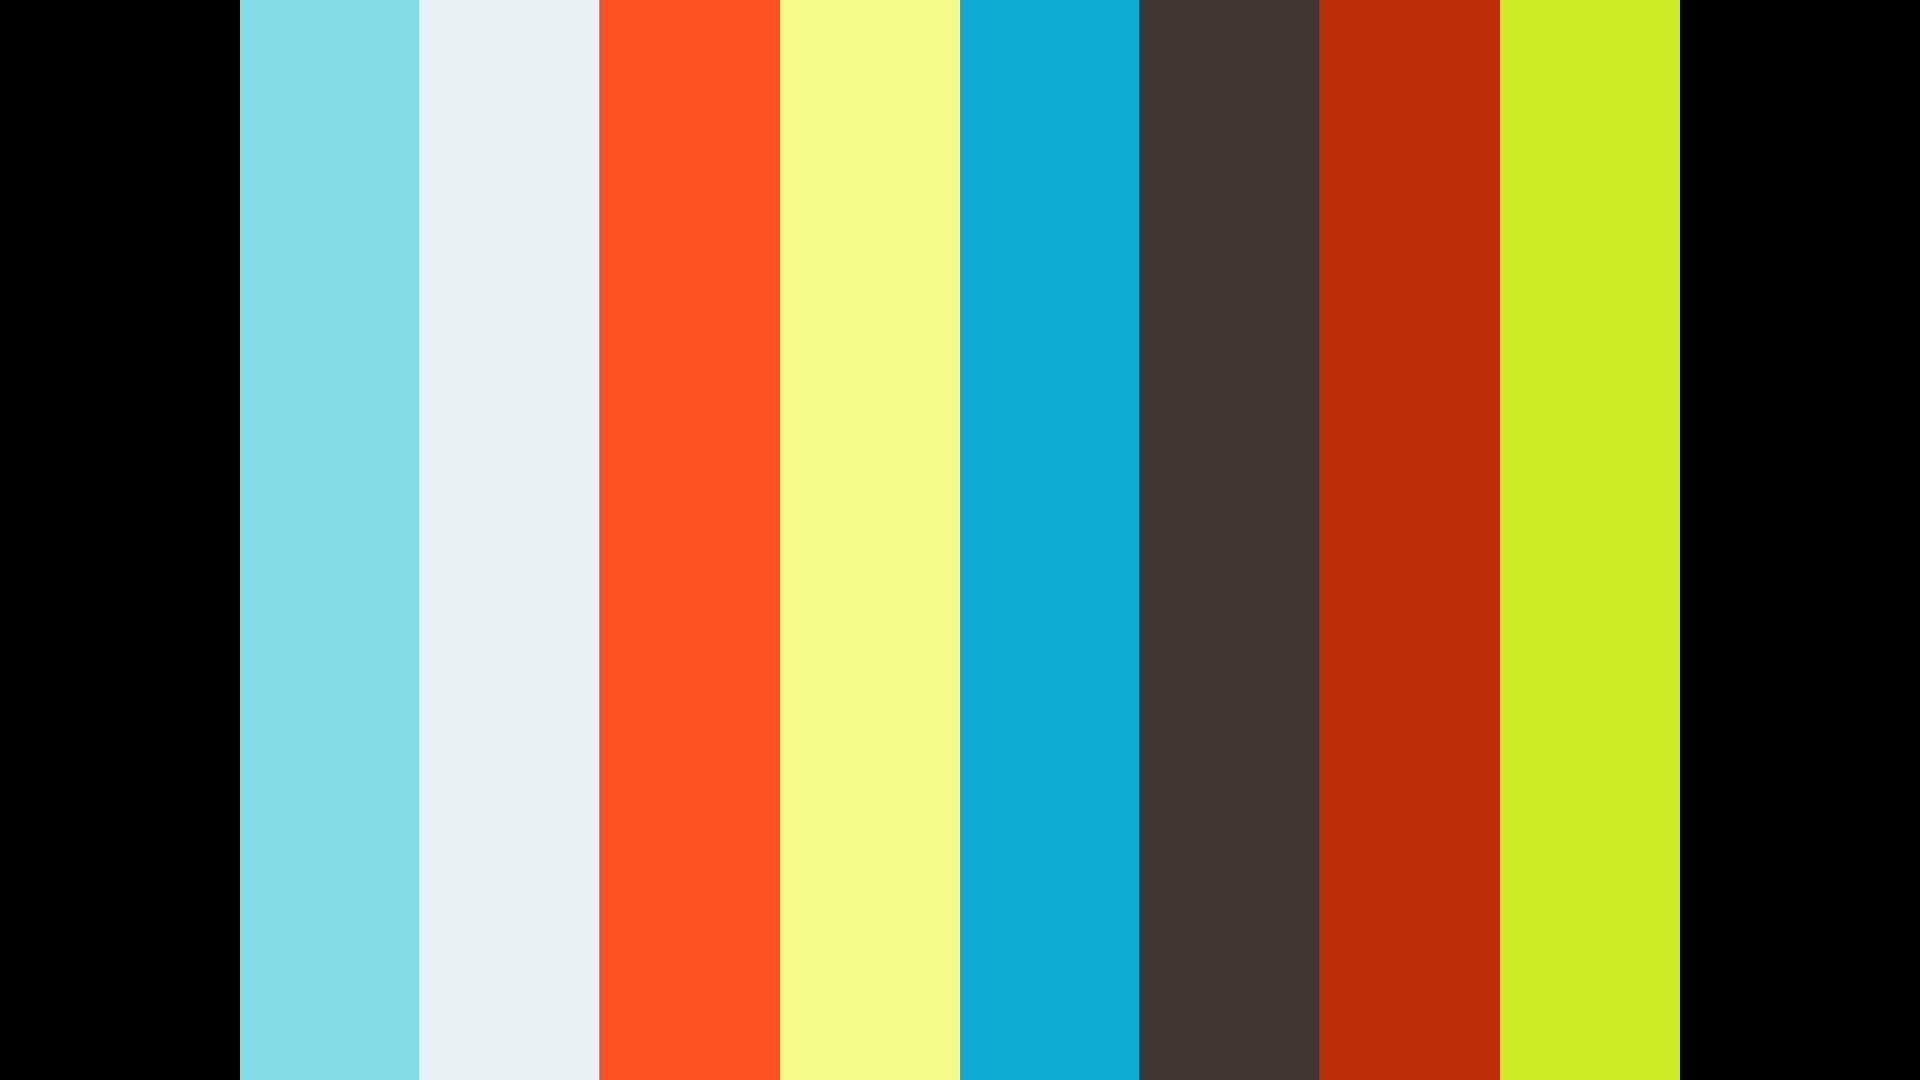 Automotive ABS plastic part laser marking with Datamark ML-100 Fiber Laser